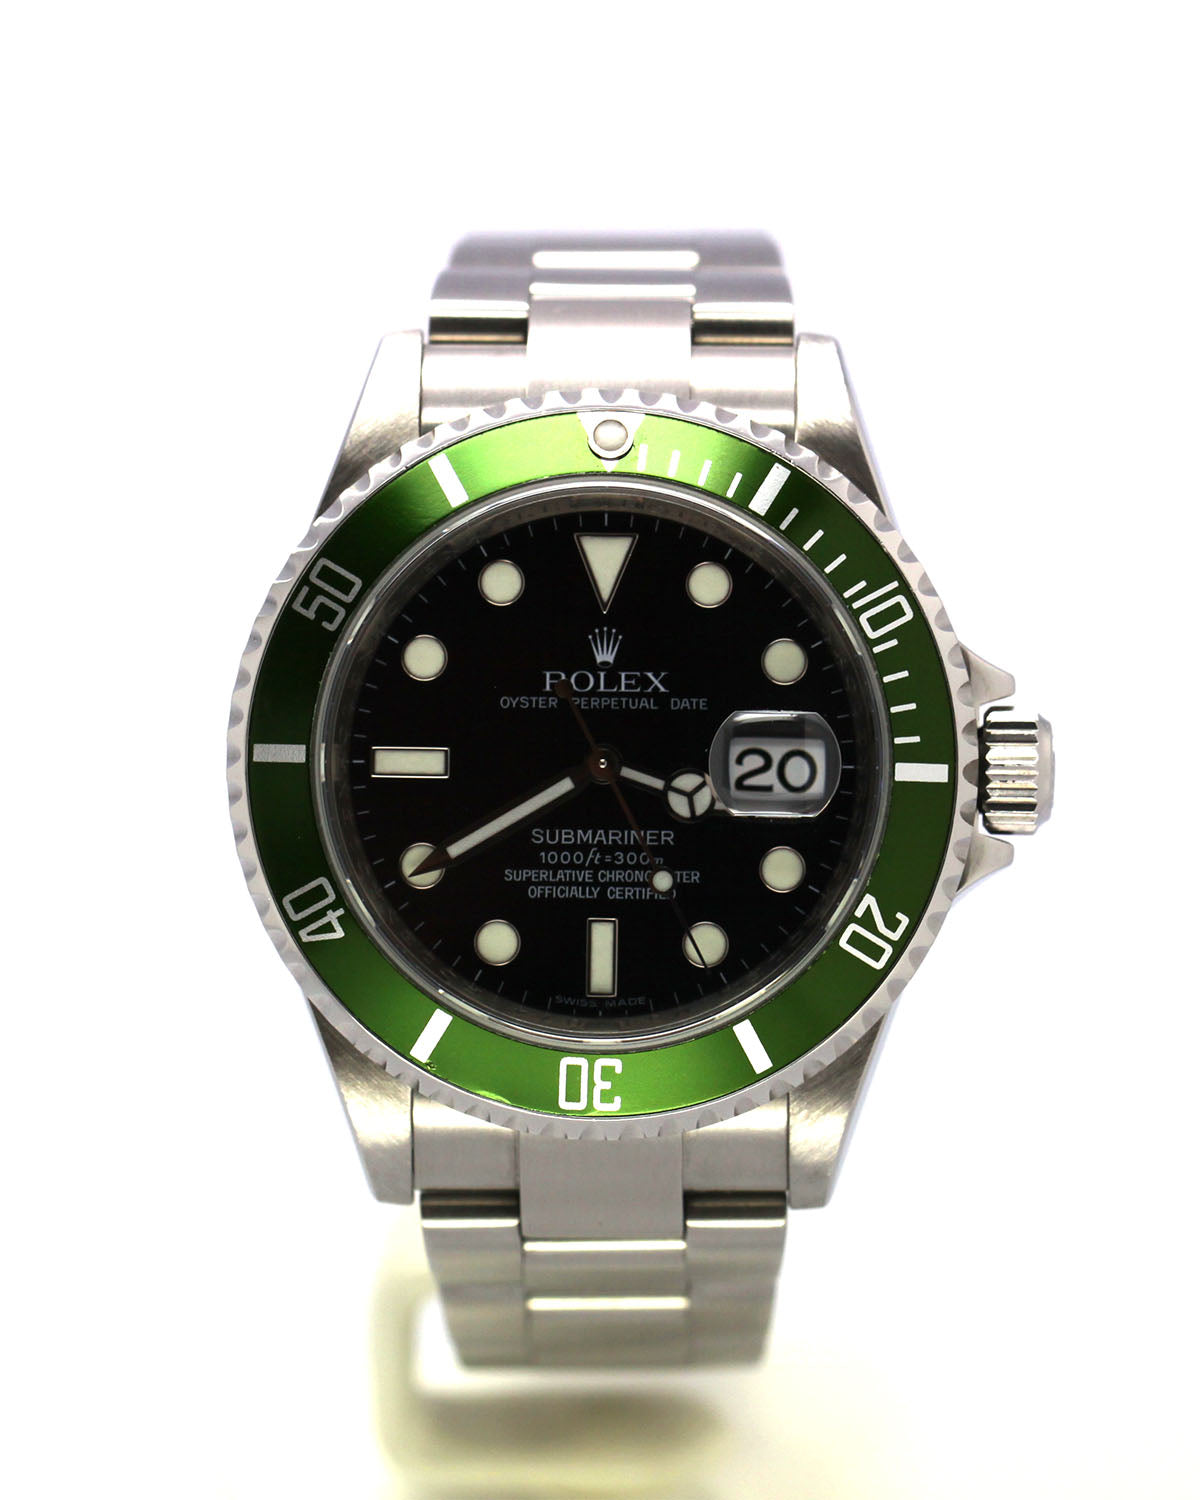 PREOWNED ROLEX STEEL SUBMARINER DATE 16610LV 'KERMIT'